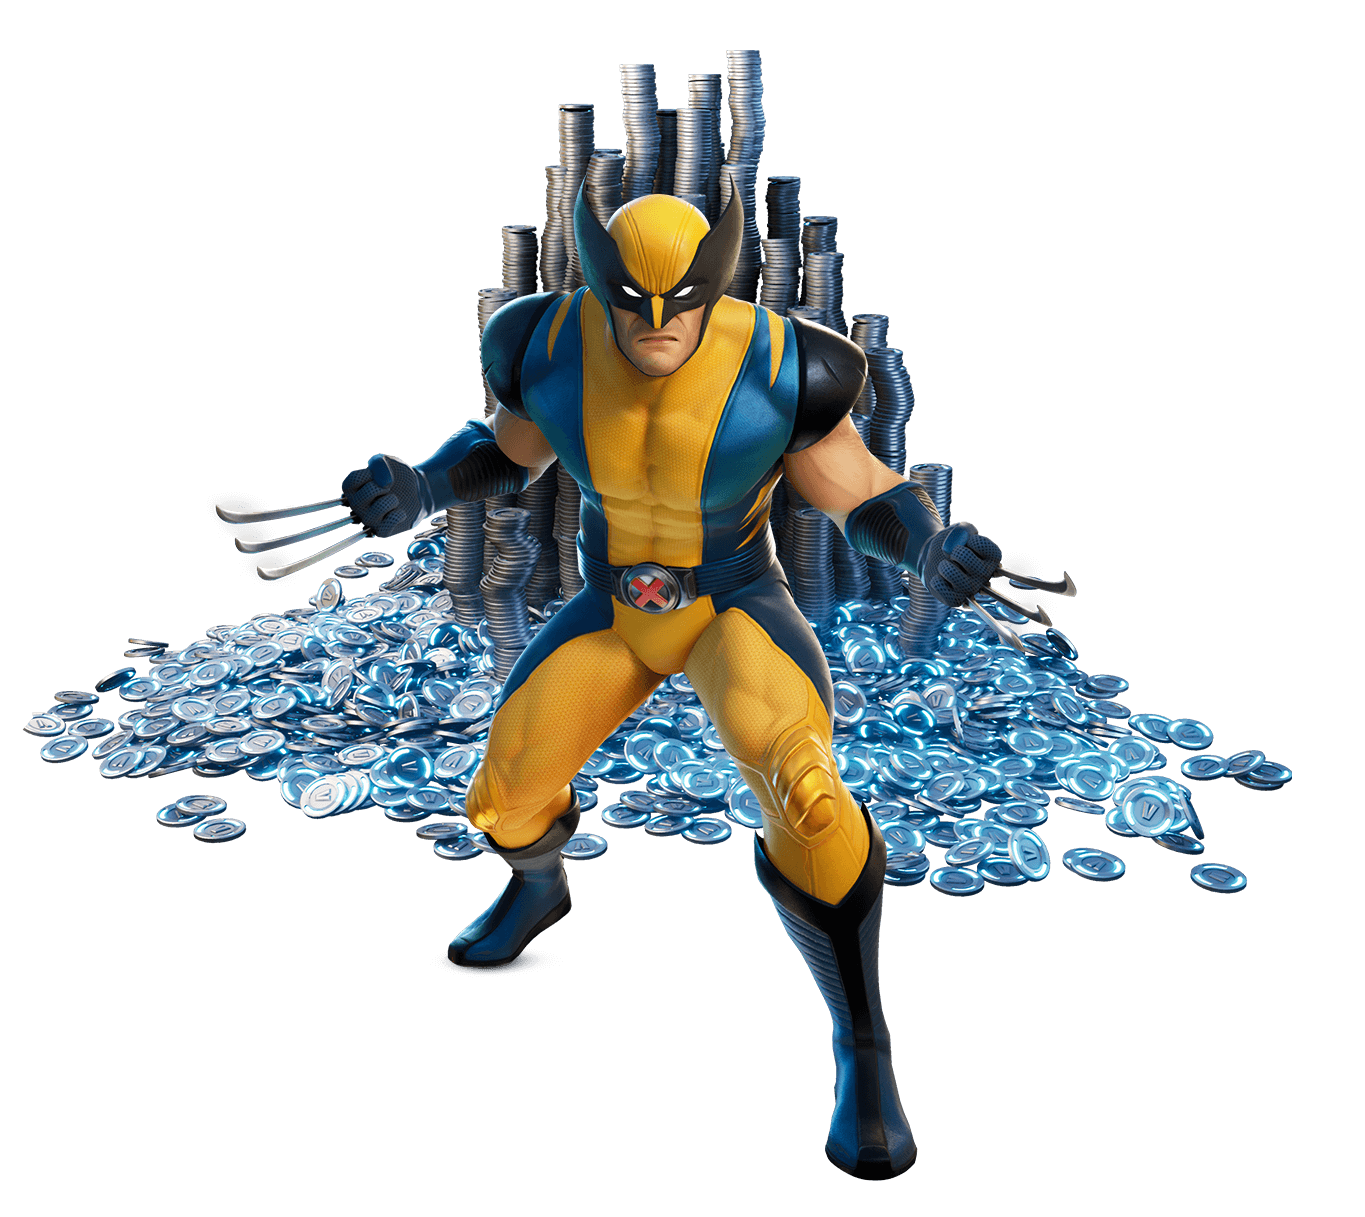 Costume di Wolverine di Fortnite